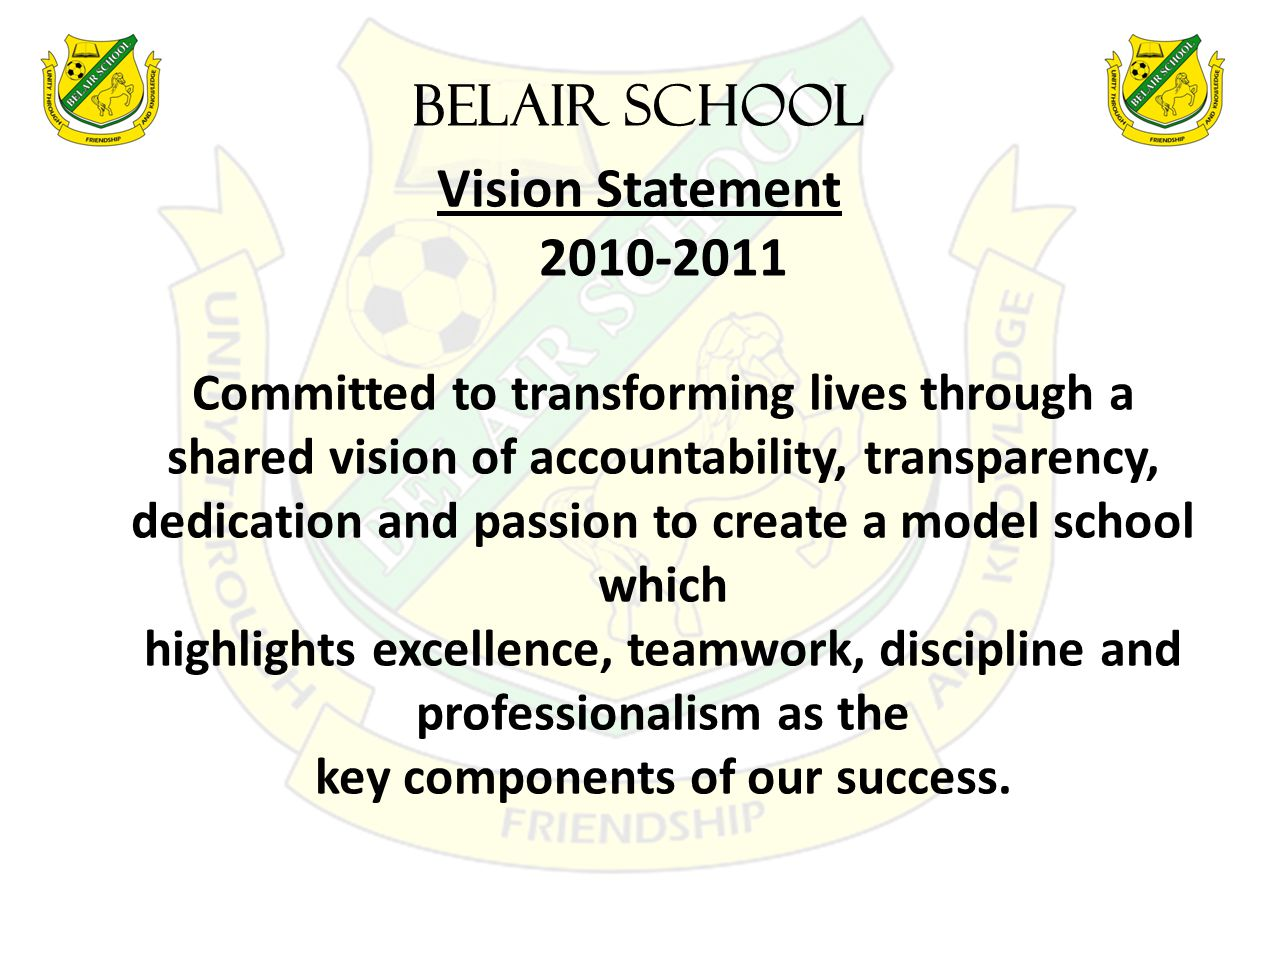 BELAIR SCHOOL Vision Statement 2010-2011 Committed to transforming lives through a shared vision of accountability, transparency, dedication and passion to create a model school which highlights excellence, teamwork, discipline and professionalism as the key components of our success.